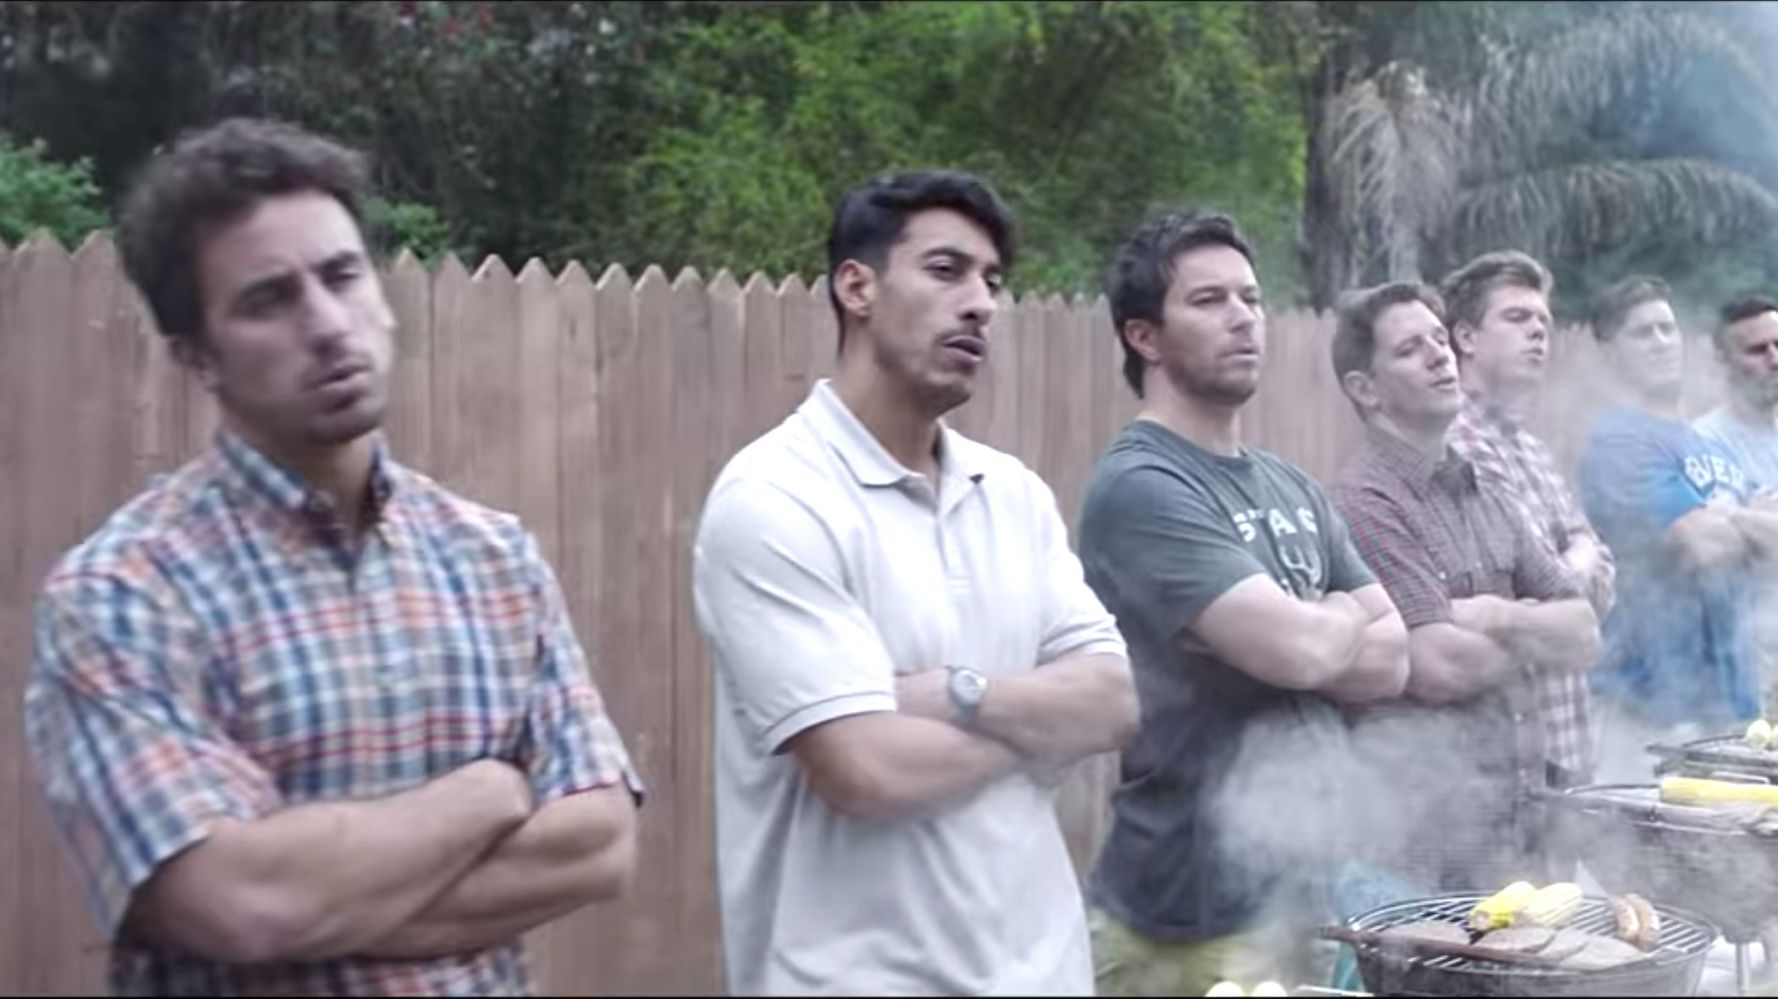 Gillette Takes On 'Toxic Masculinity' In Viral Me Too Ad